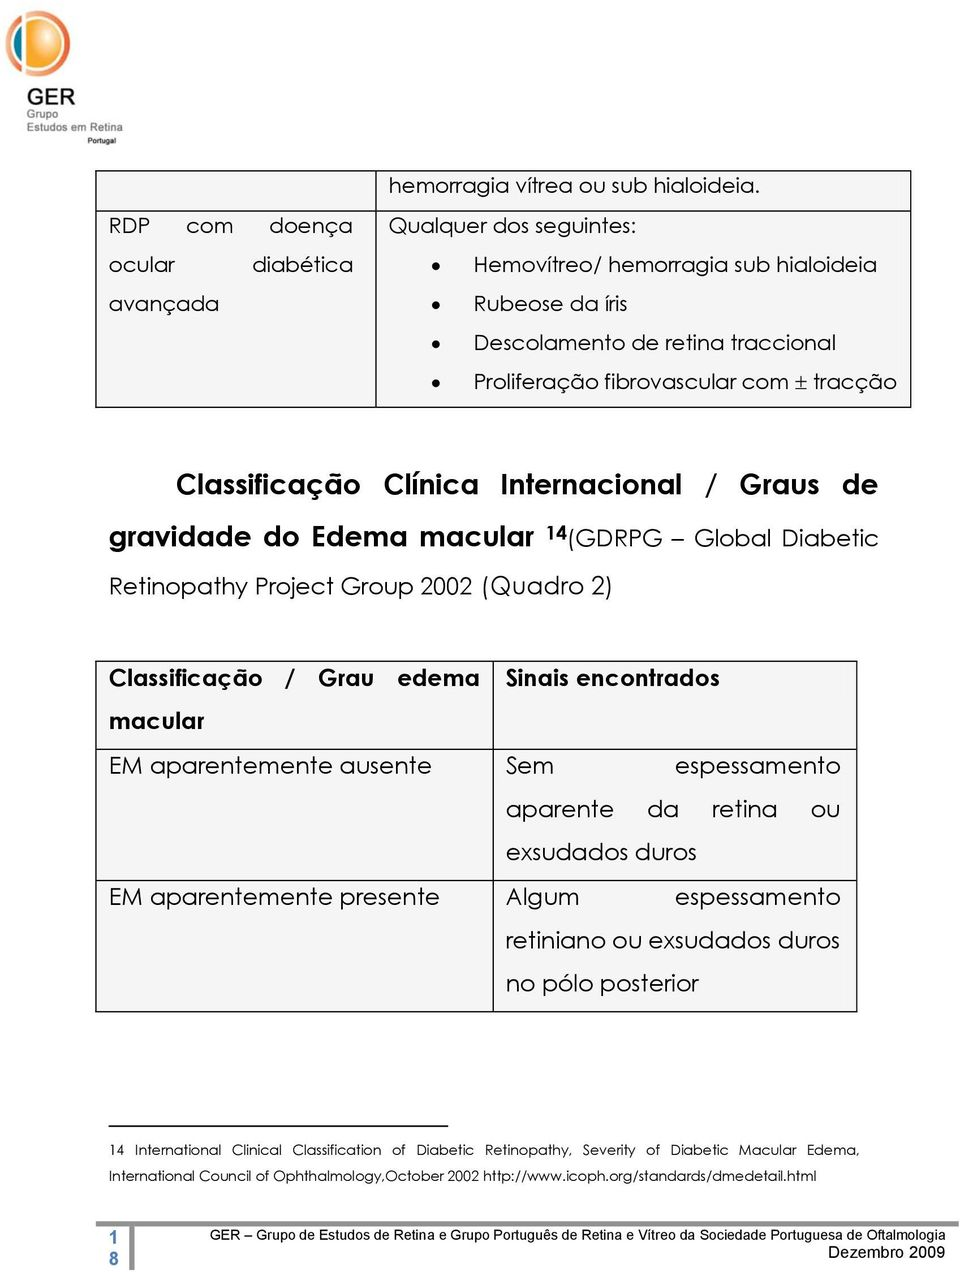 Classificação Clínica Internacional / Graus de gravidade do Edema macular 14 (GDRPG Global Diabetic Retinopathy Project Group 2002 (Quadro 2) Classificação / Grau edema Sinais encontrados macular EM